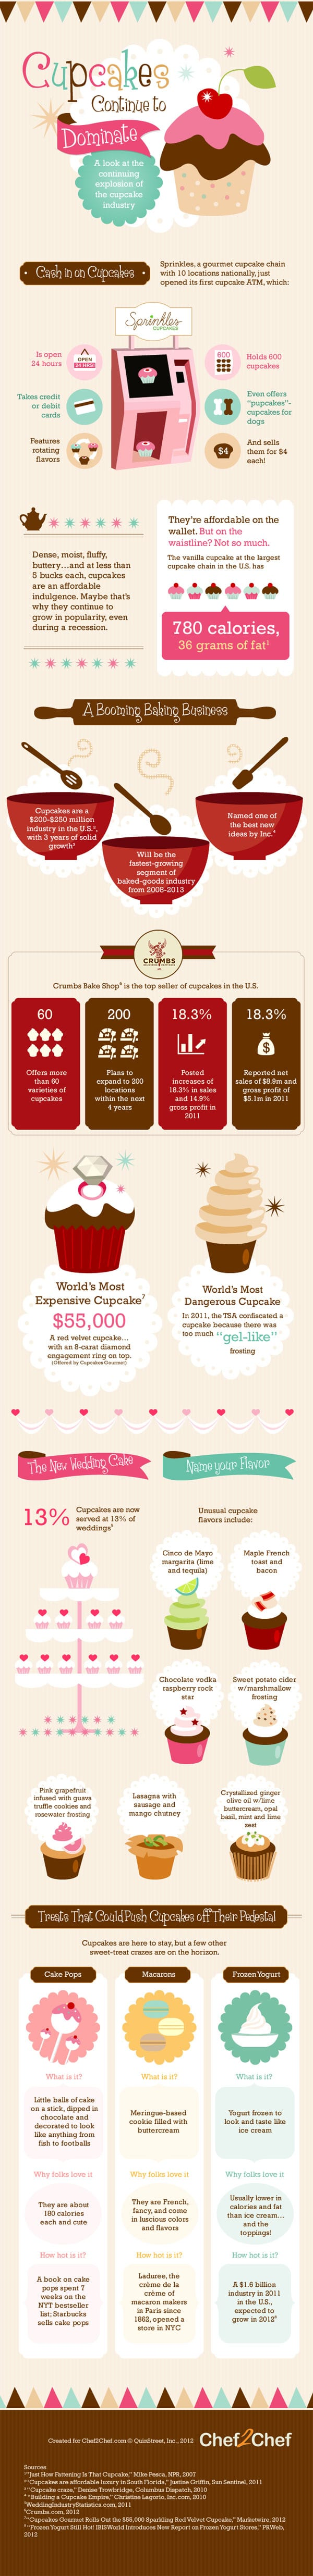 Compete details of cupcake business plan is here